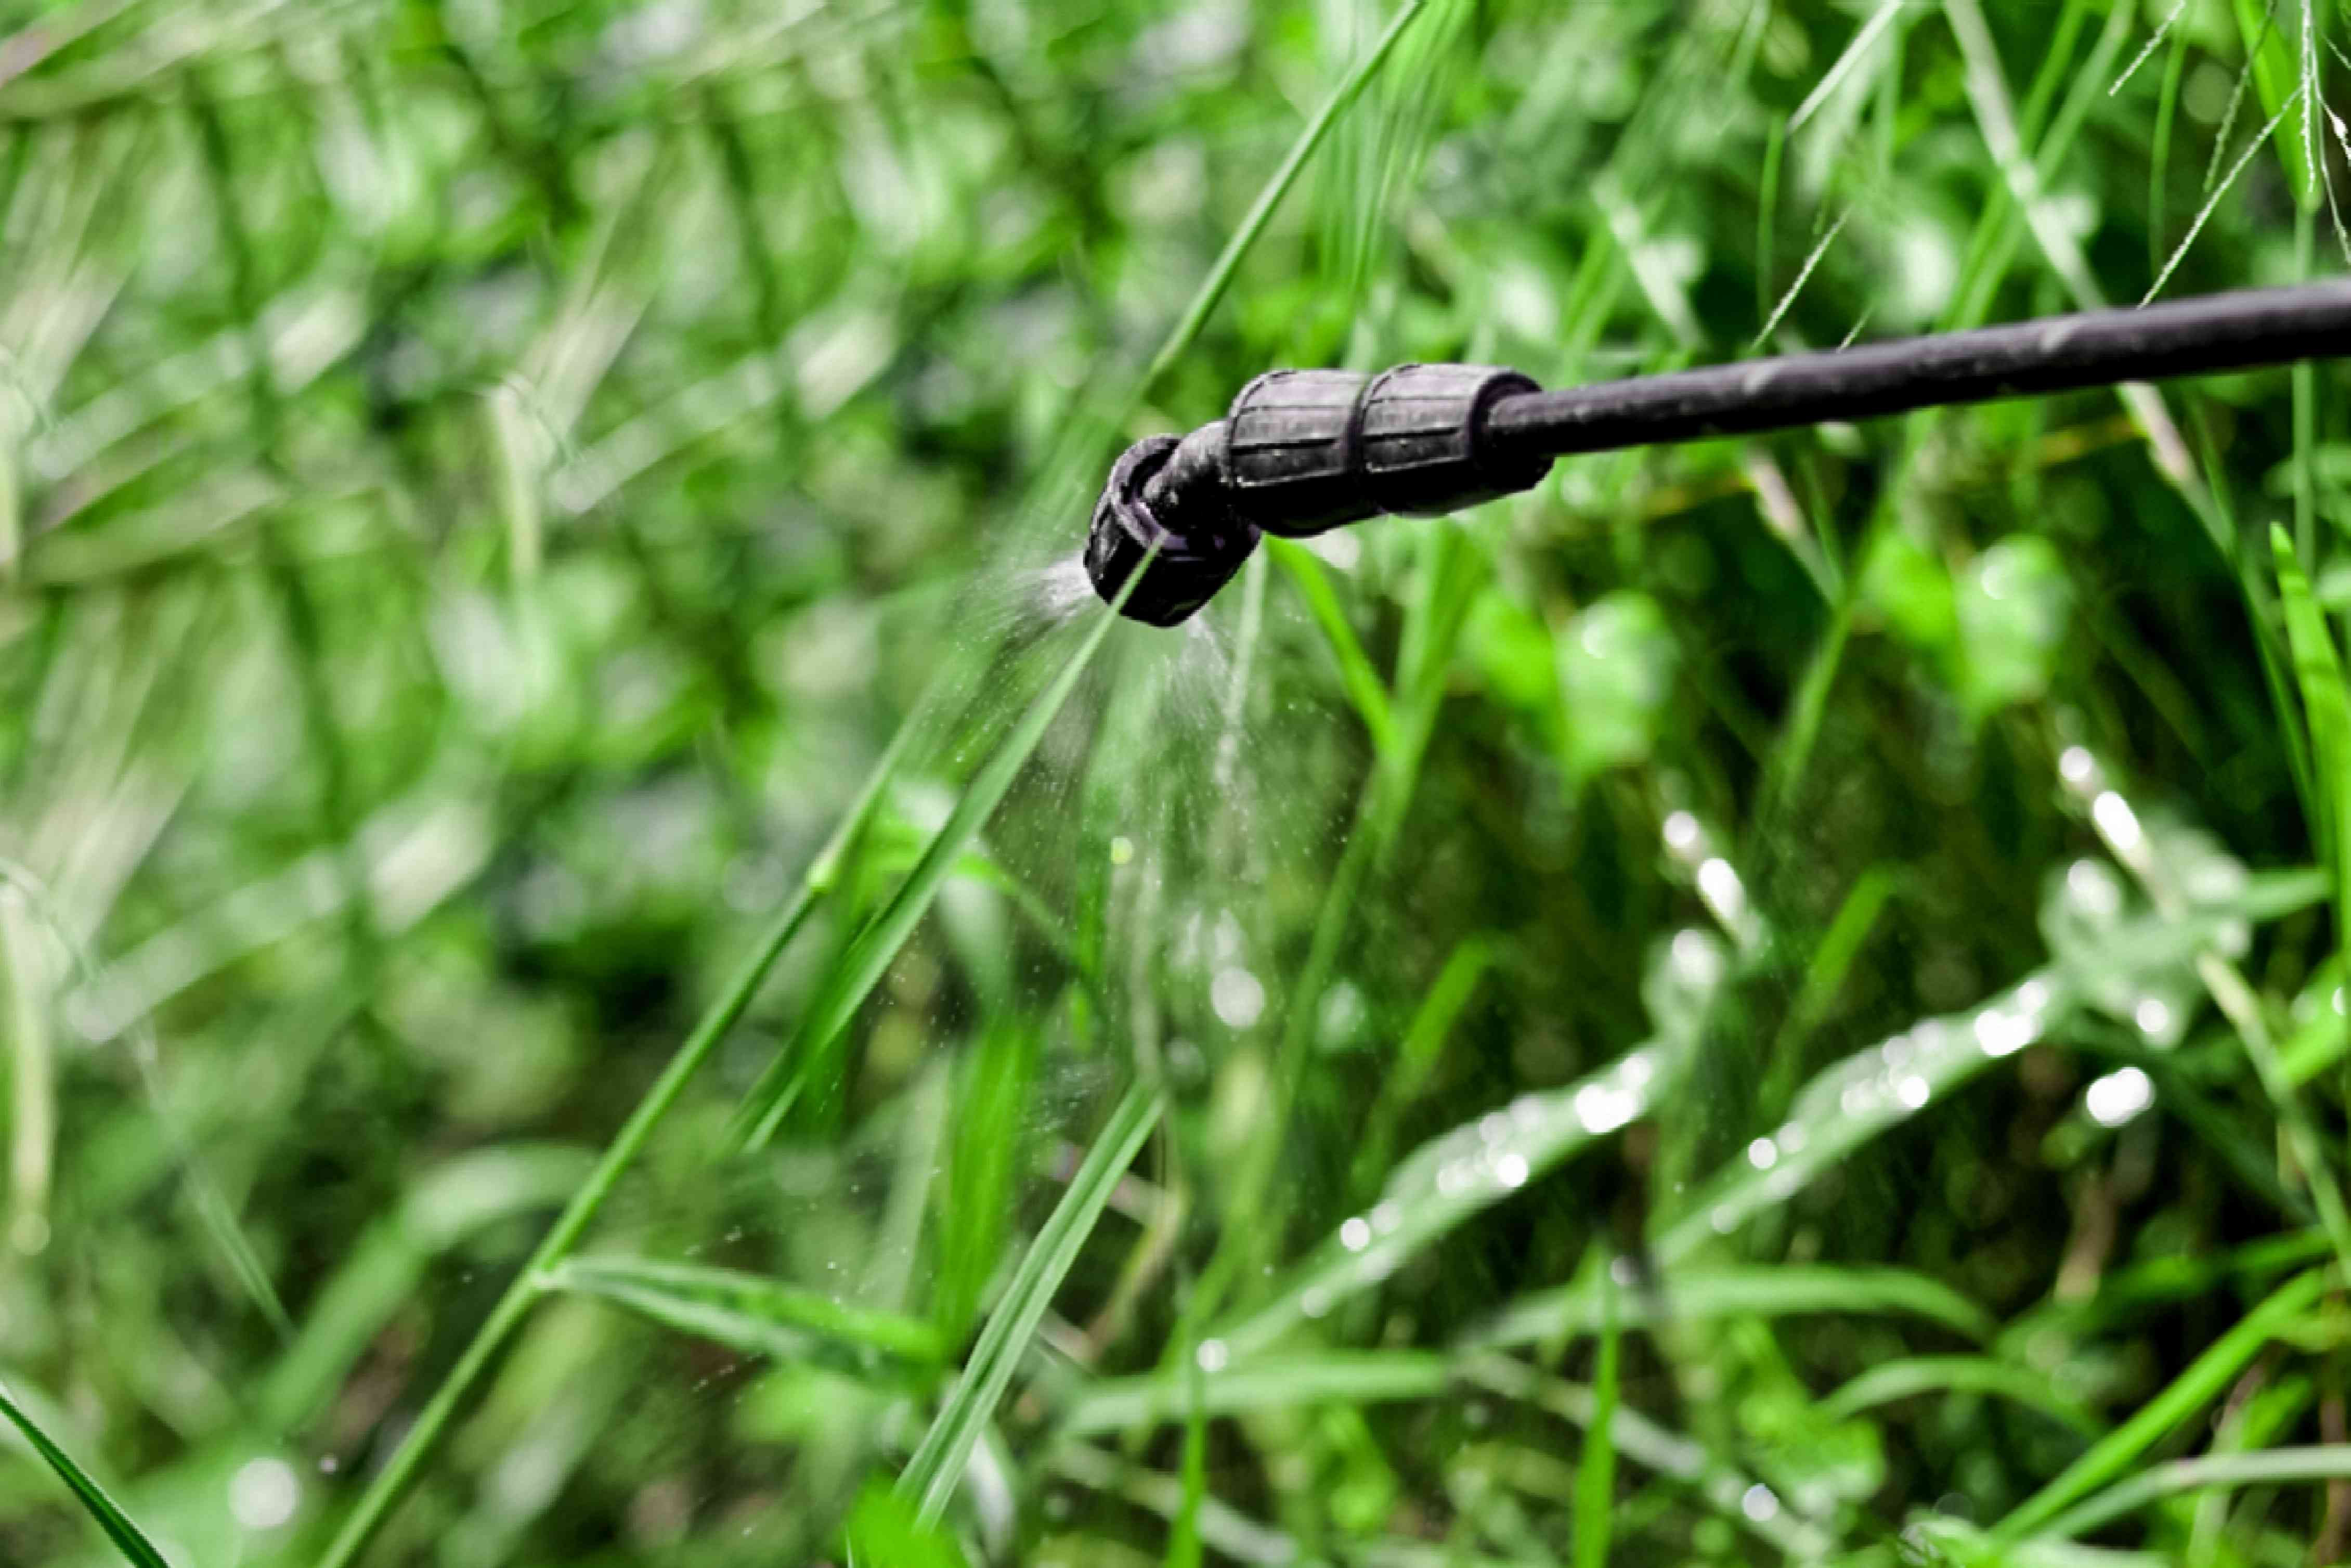 using herbicide on a lawn to control weeds